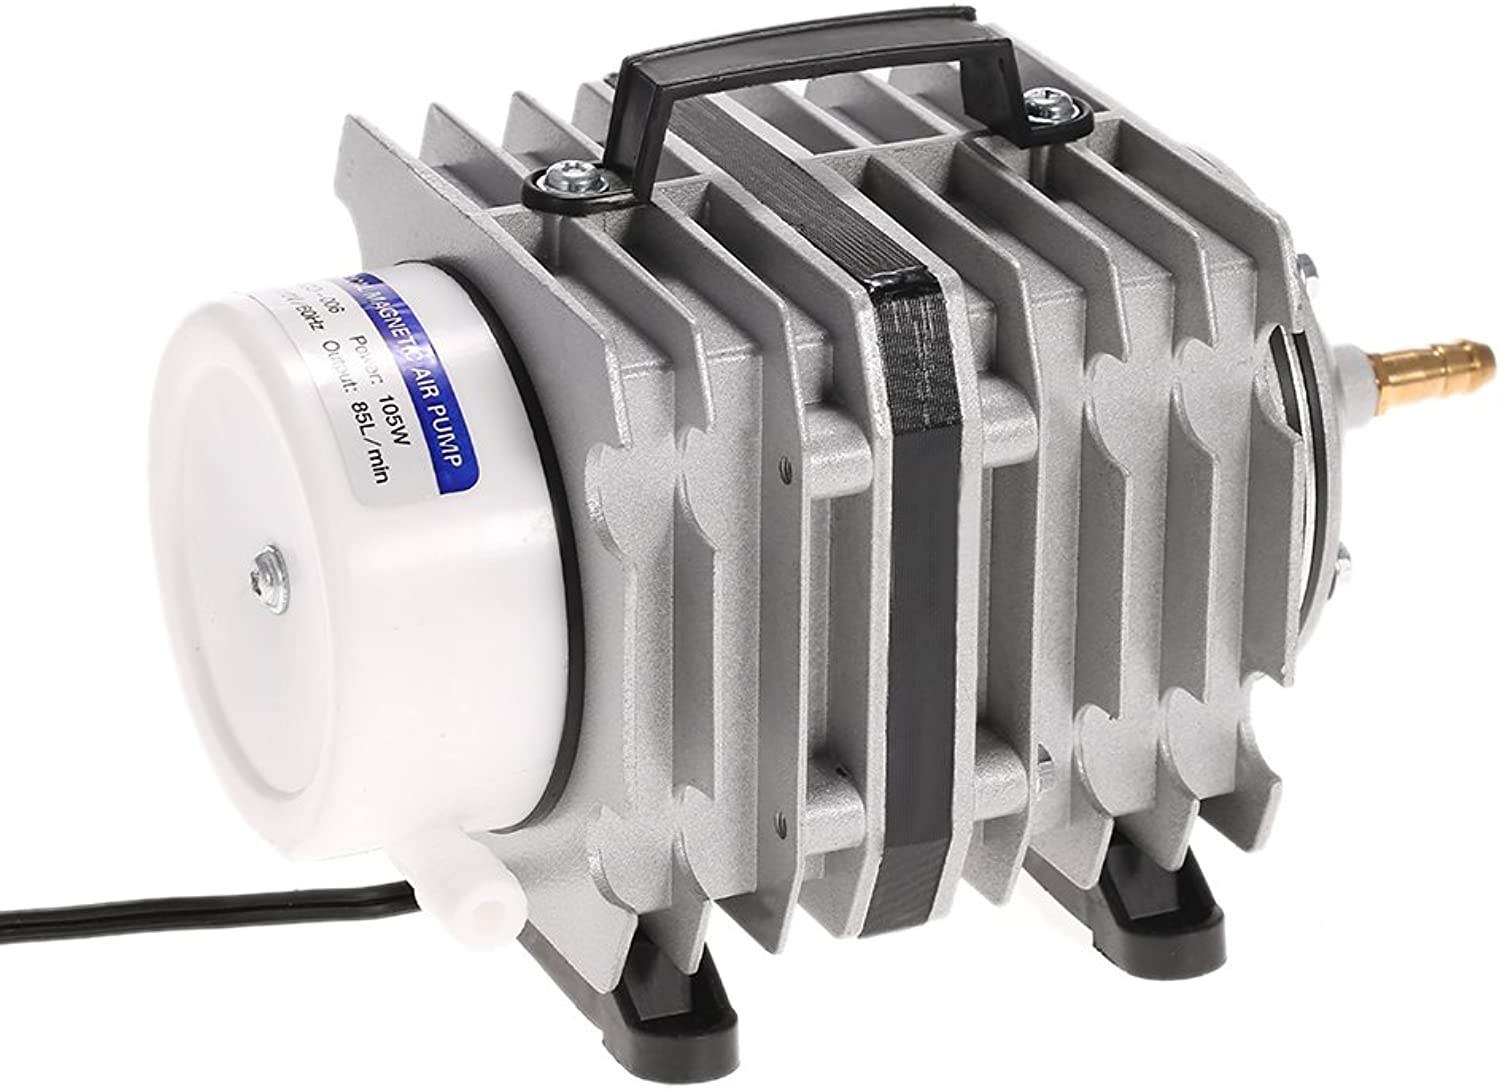 Anself O2 Aquarium Commercial Hydro Air Pump with 6 8 10 Outlets Electrical Magnetic Oxygen Pumps